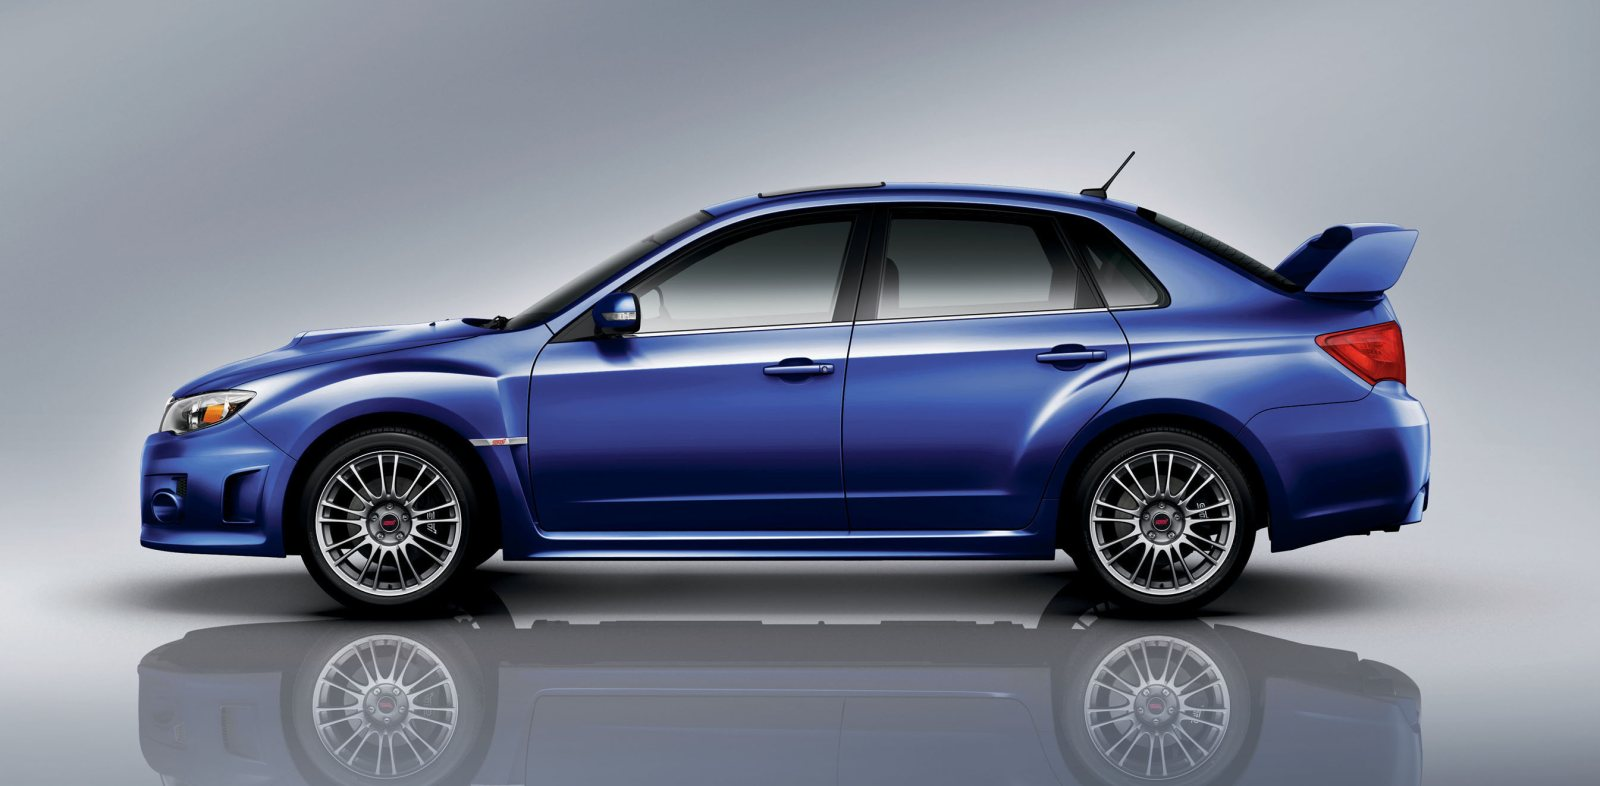 2011 subaru impreza wrx sti sedan the wing is back. Black Bedroom Furniture Sets. Home Design Ideas